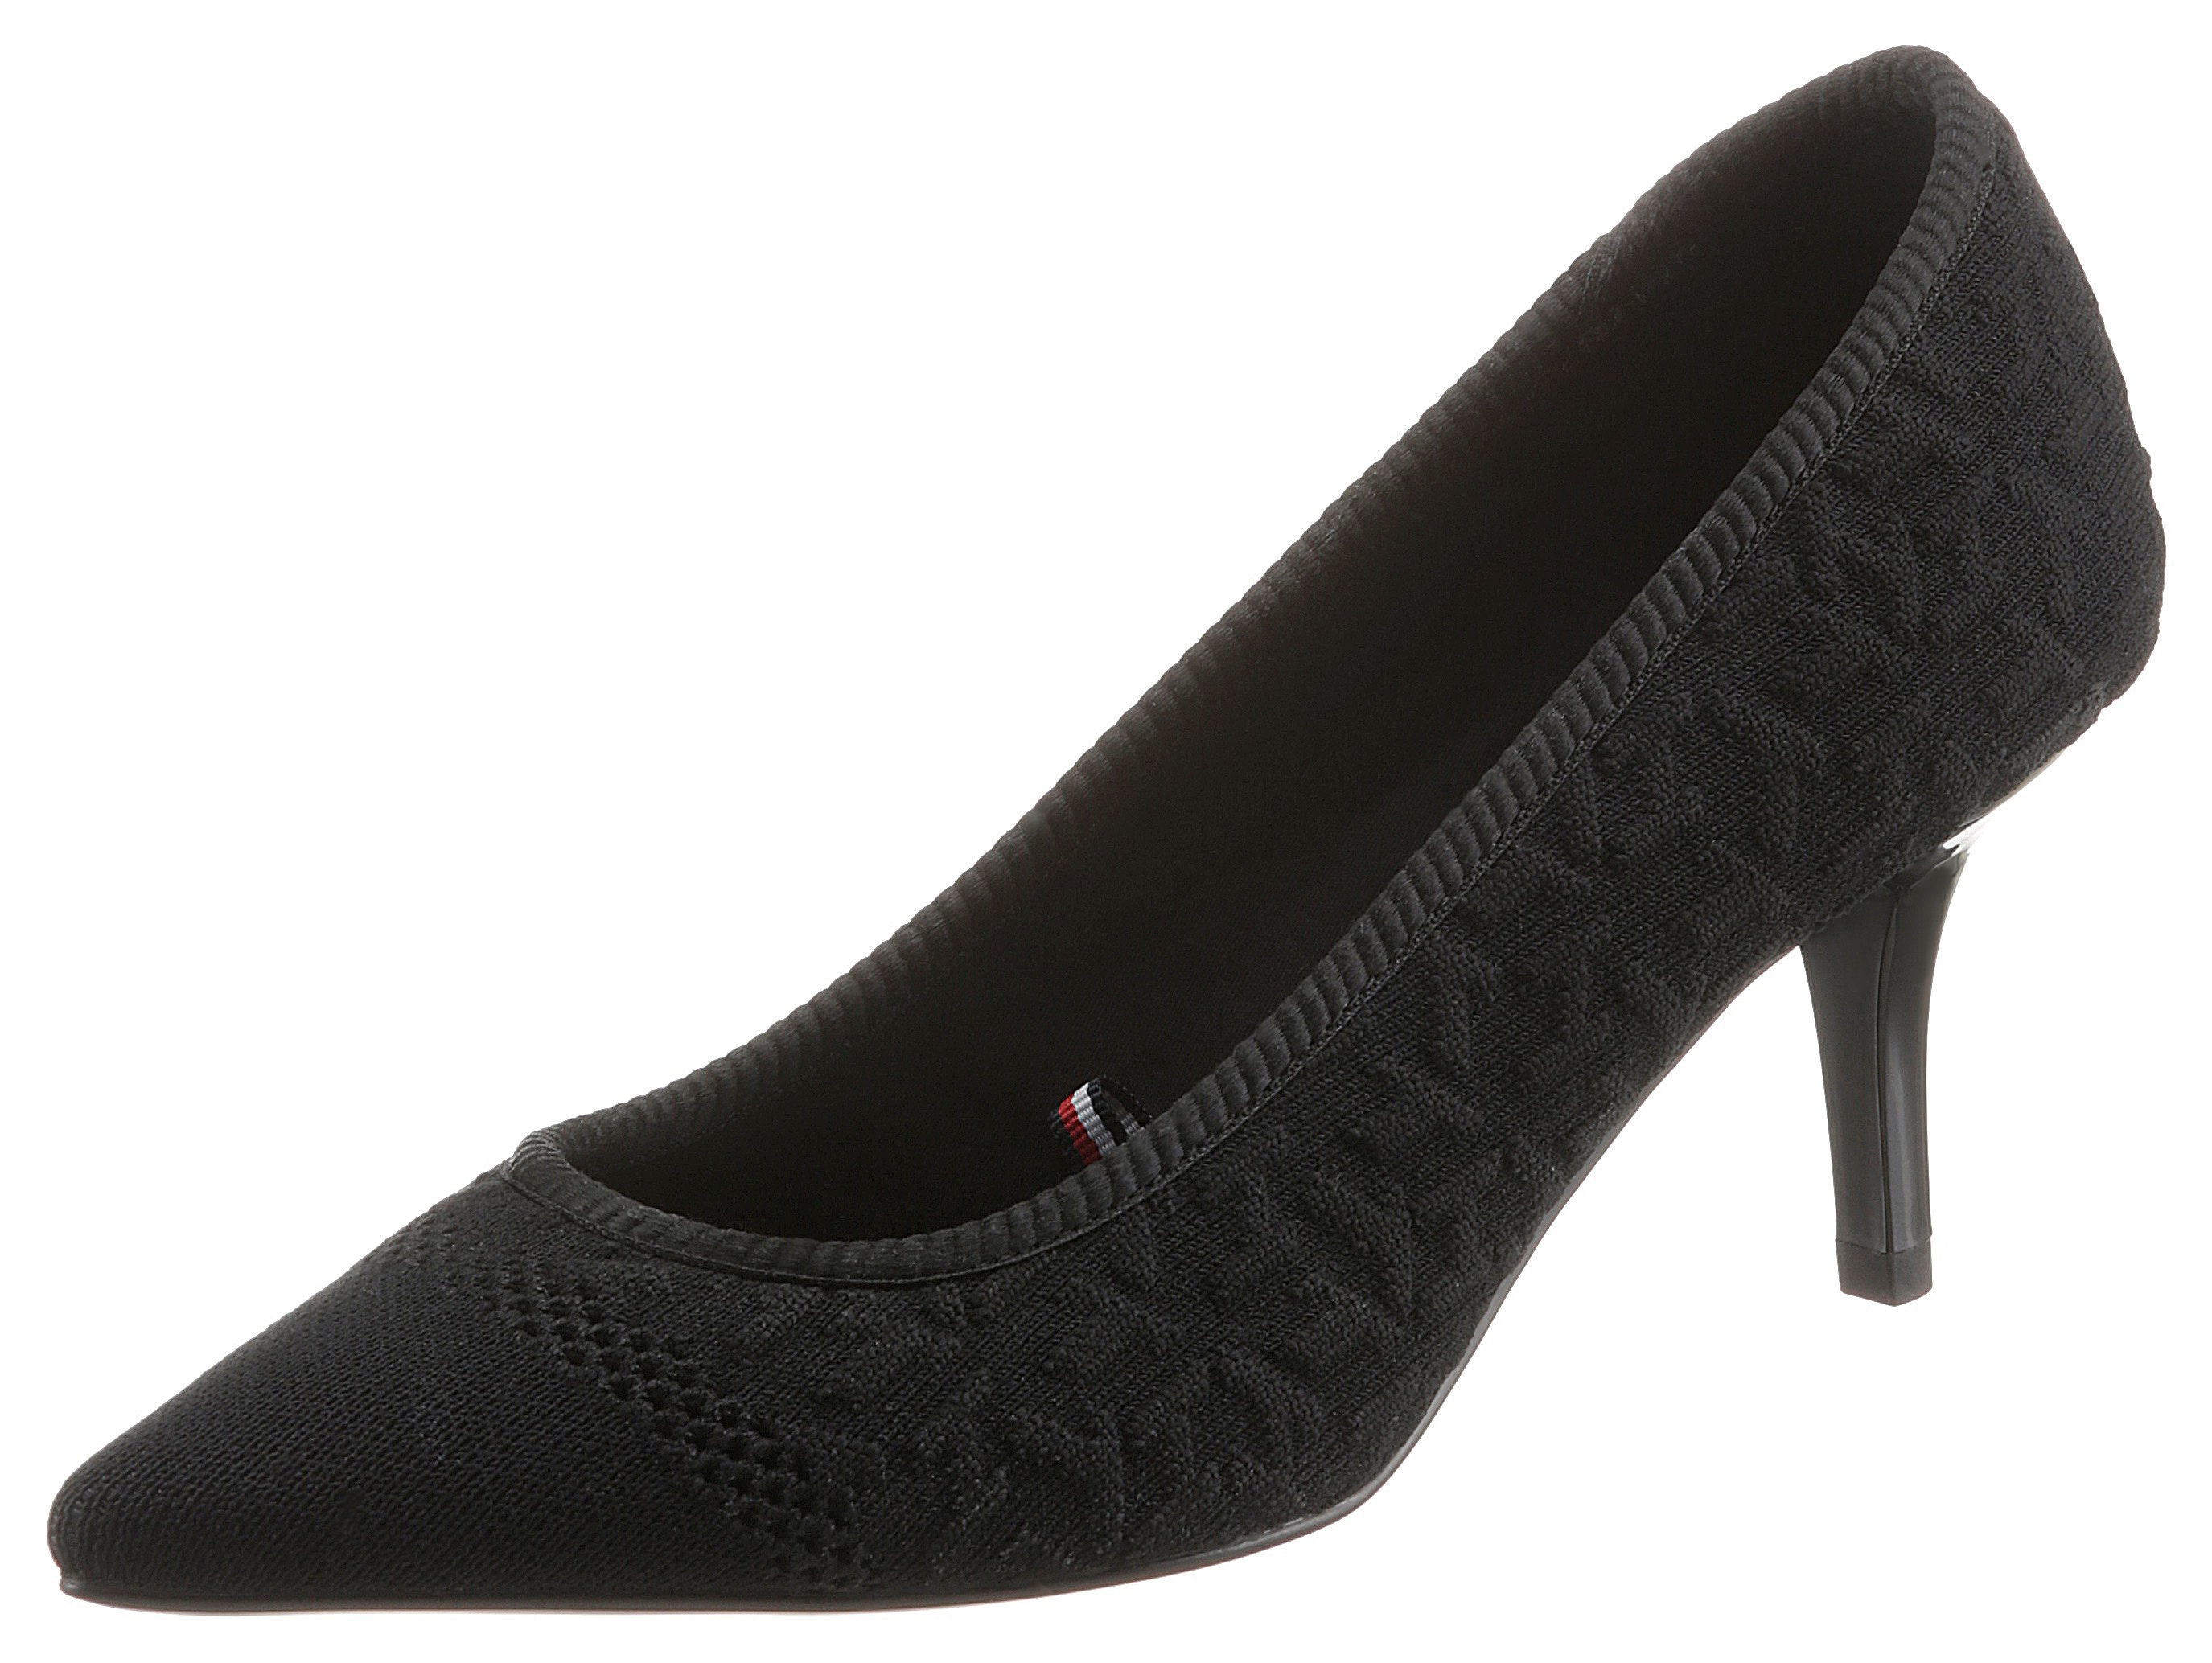 tommy hilfiger -  Pumps TH KNITTED MID HEEL PUMP, in spitzer Form